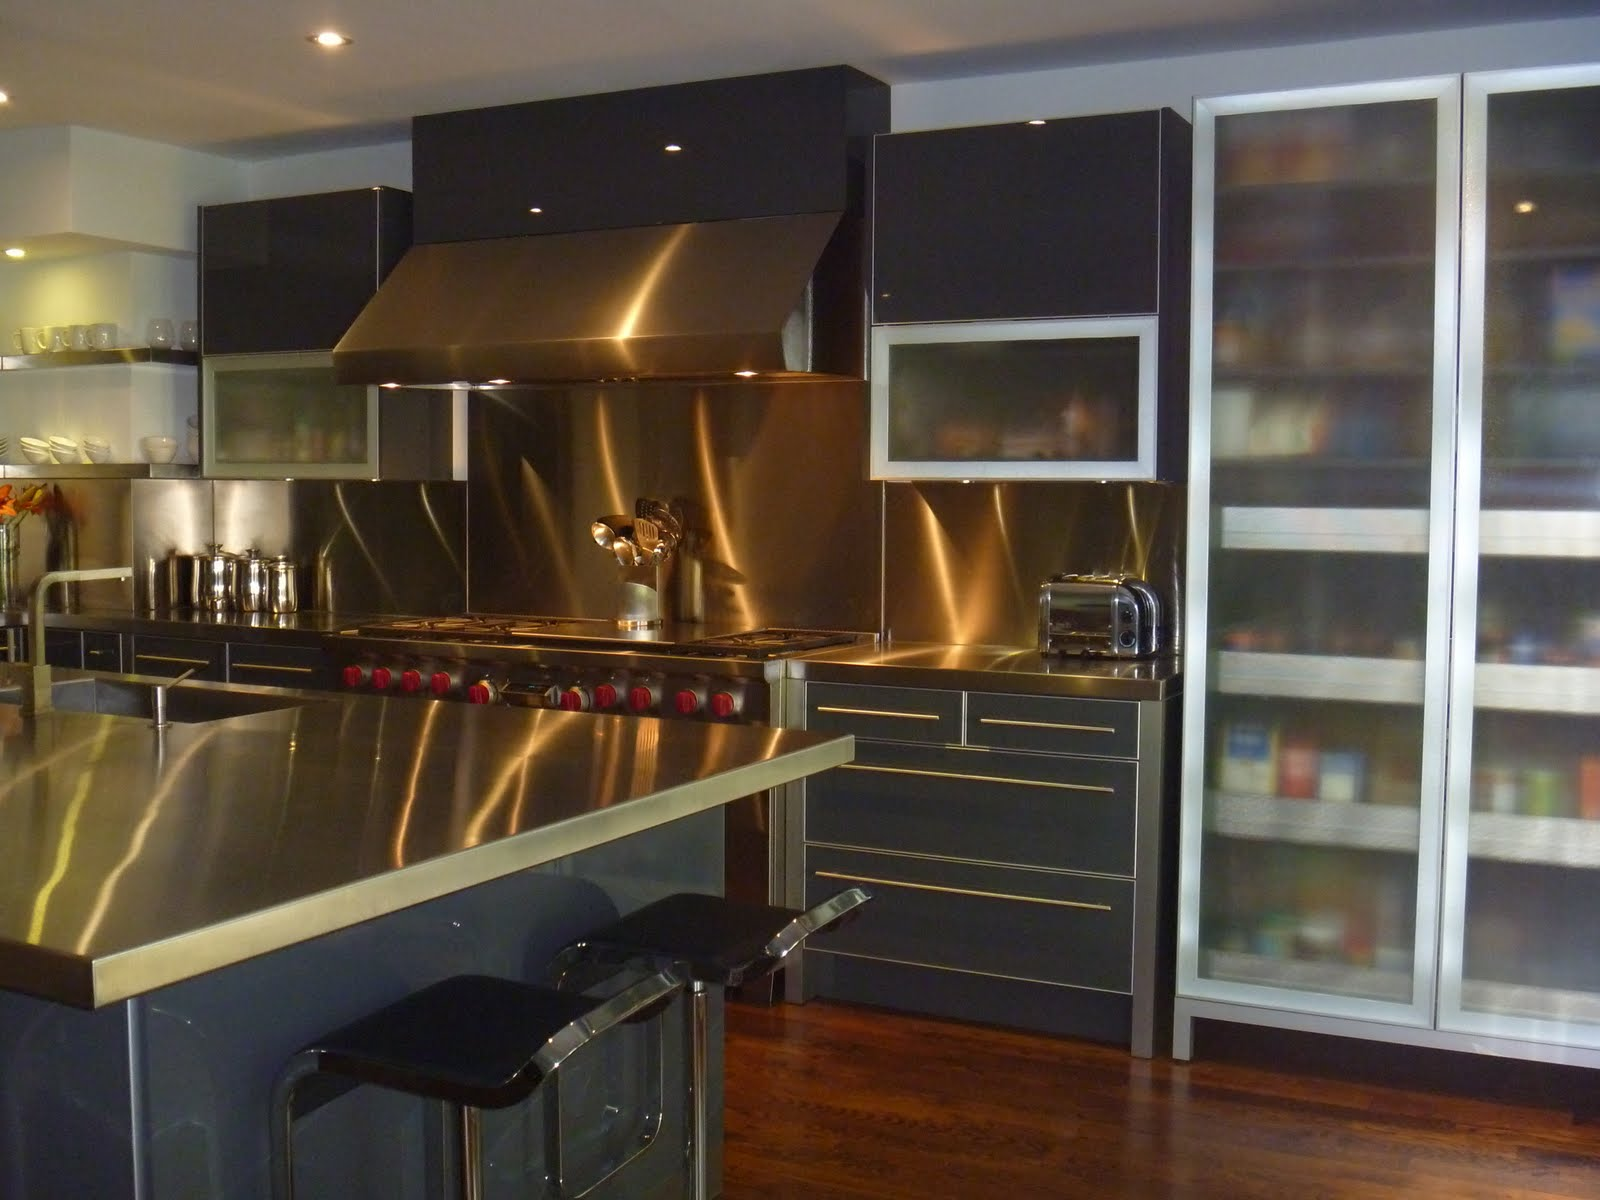 green design 4u by clara focus on sustainable kitchen design sustainable kitchen design with custom built cabinetry